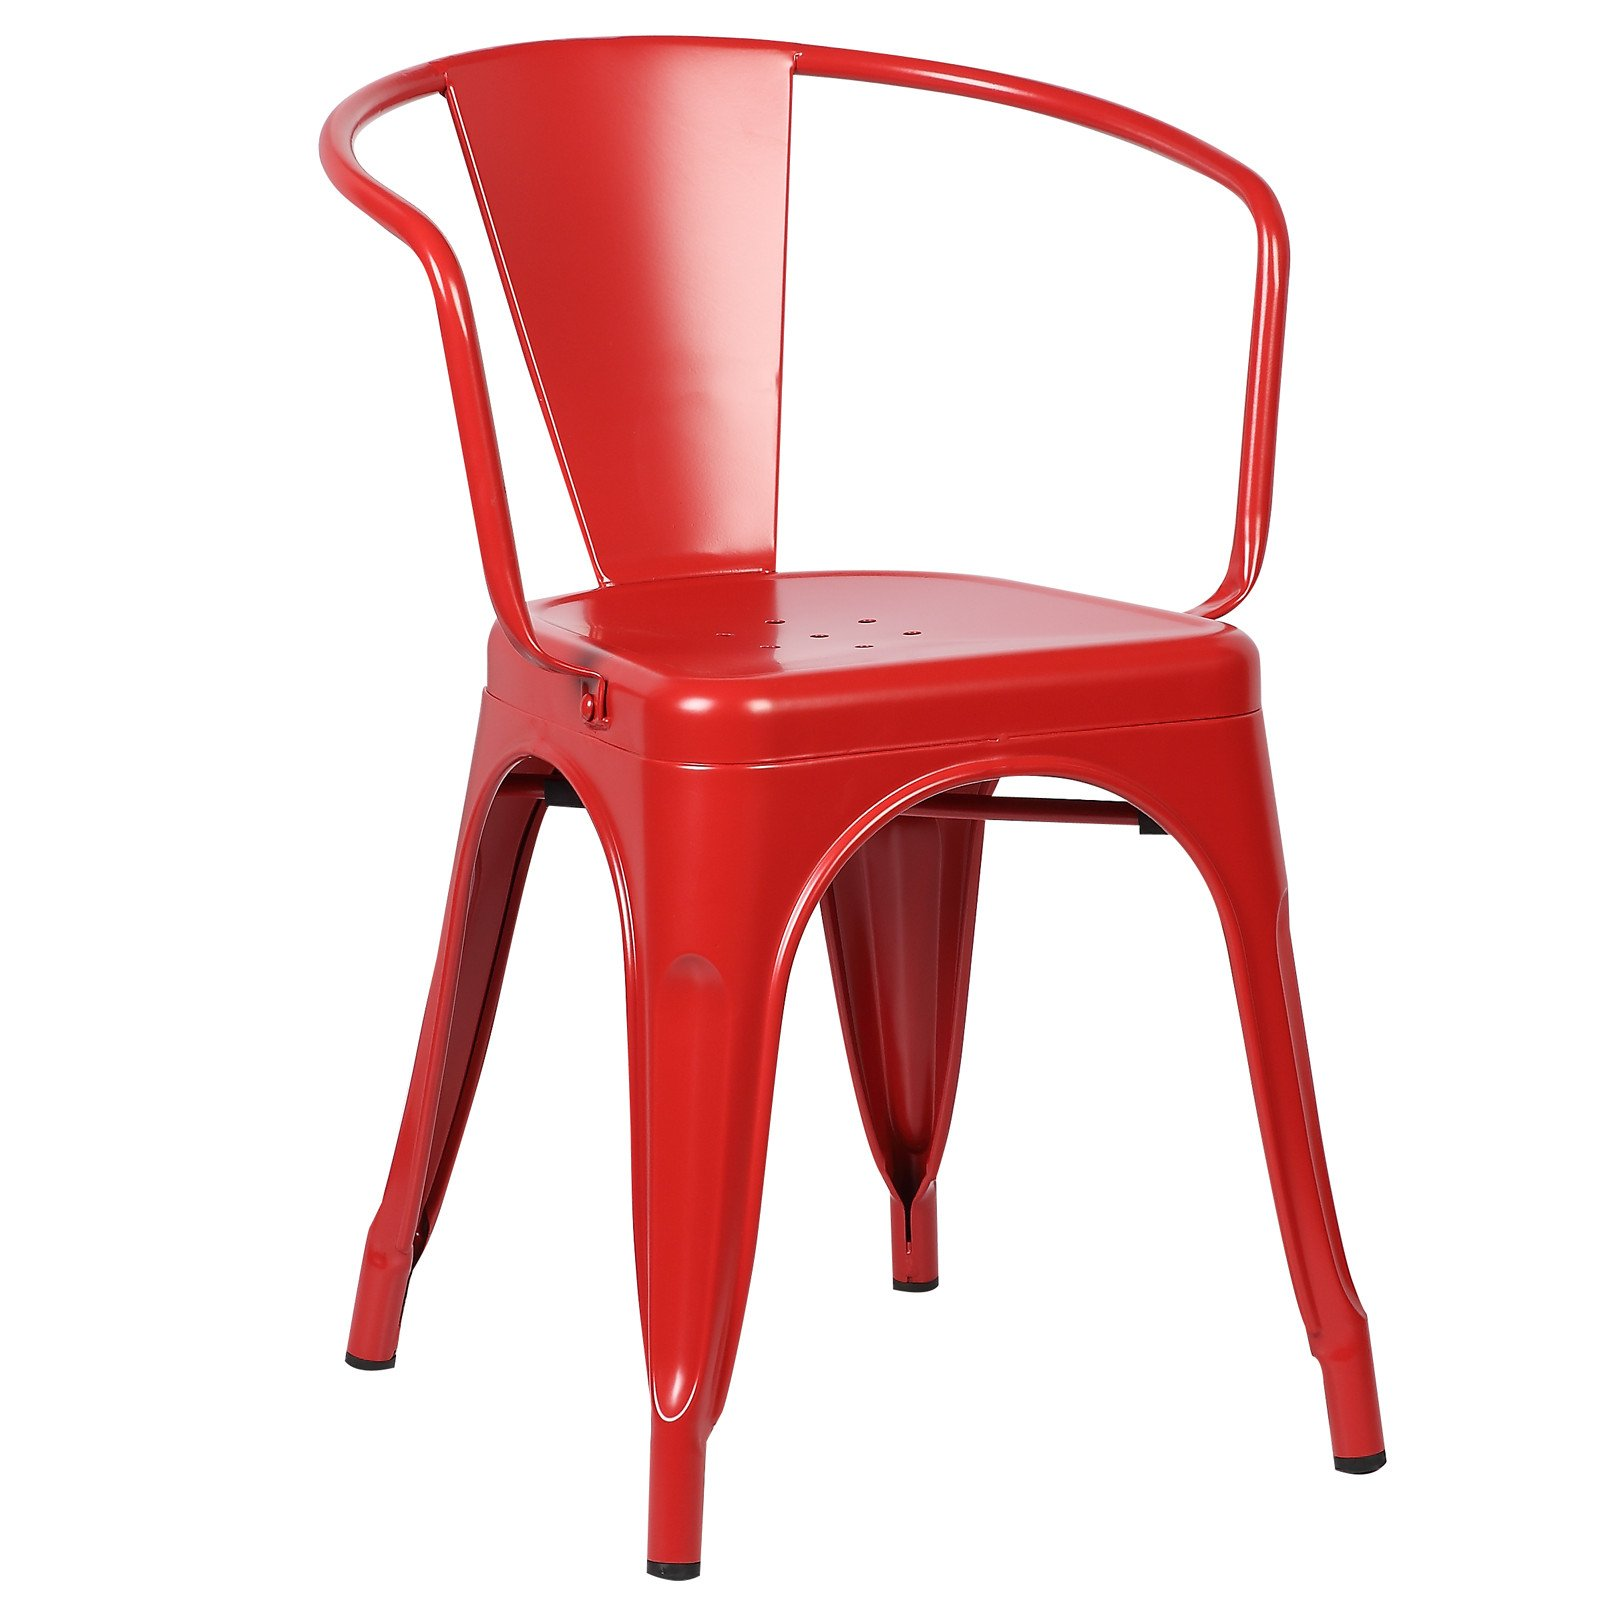 Poly and Bark Trattoria Arm Chair in Red